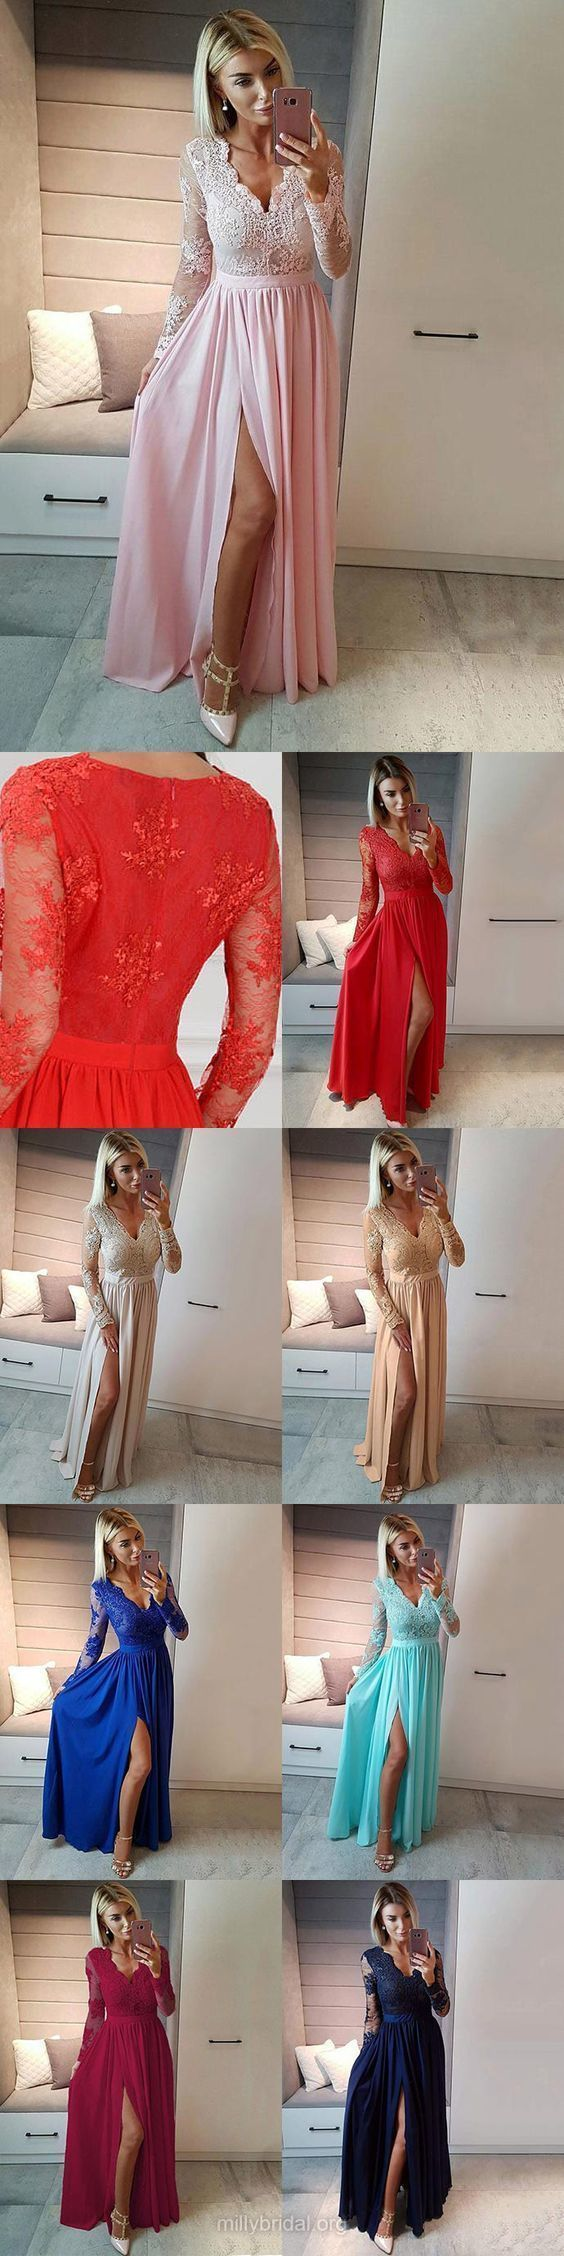 Prom Dress Ball Gown, A-line Prom Dresses V-neck, Chiffon Prom Dresses Tulle Appliques, Modest Prom Dresses For Teens #modestprom